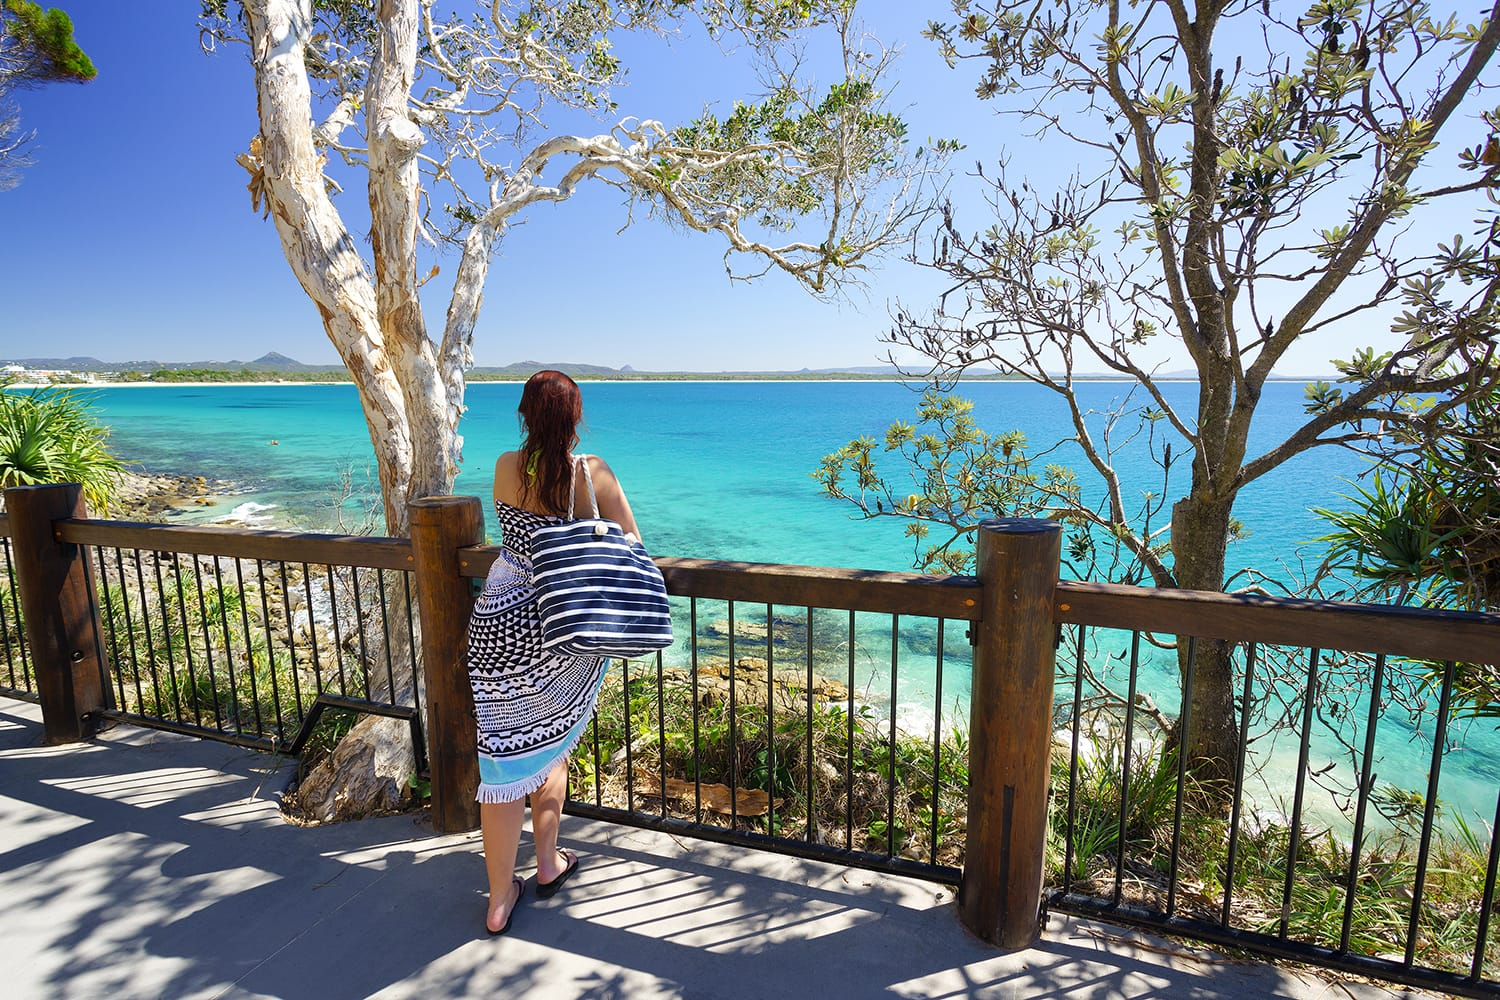 Looking out over Noosa National Park in Australia